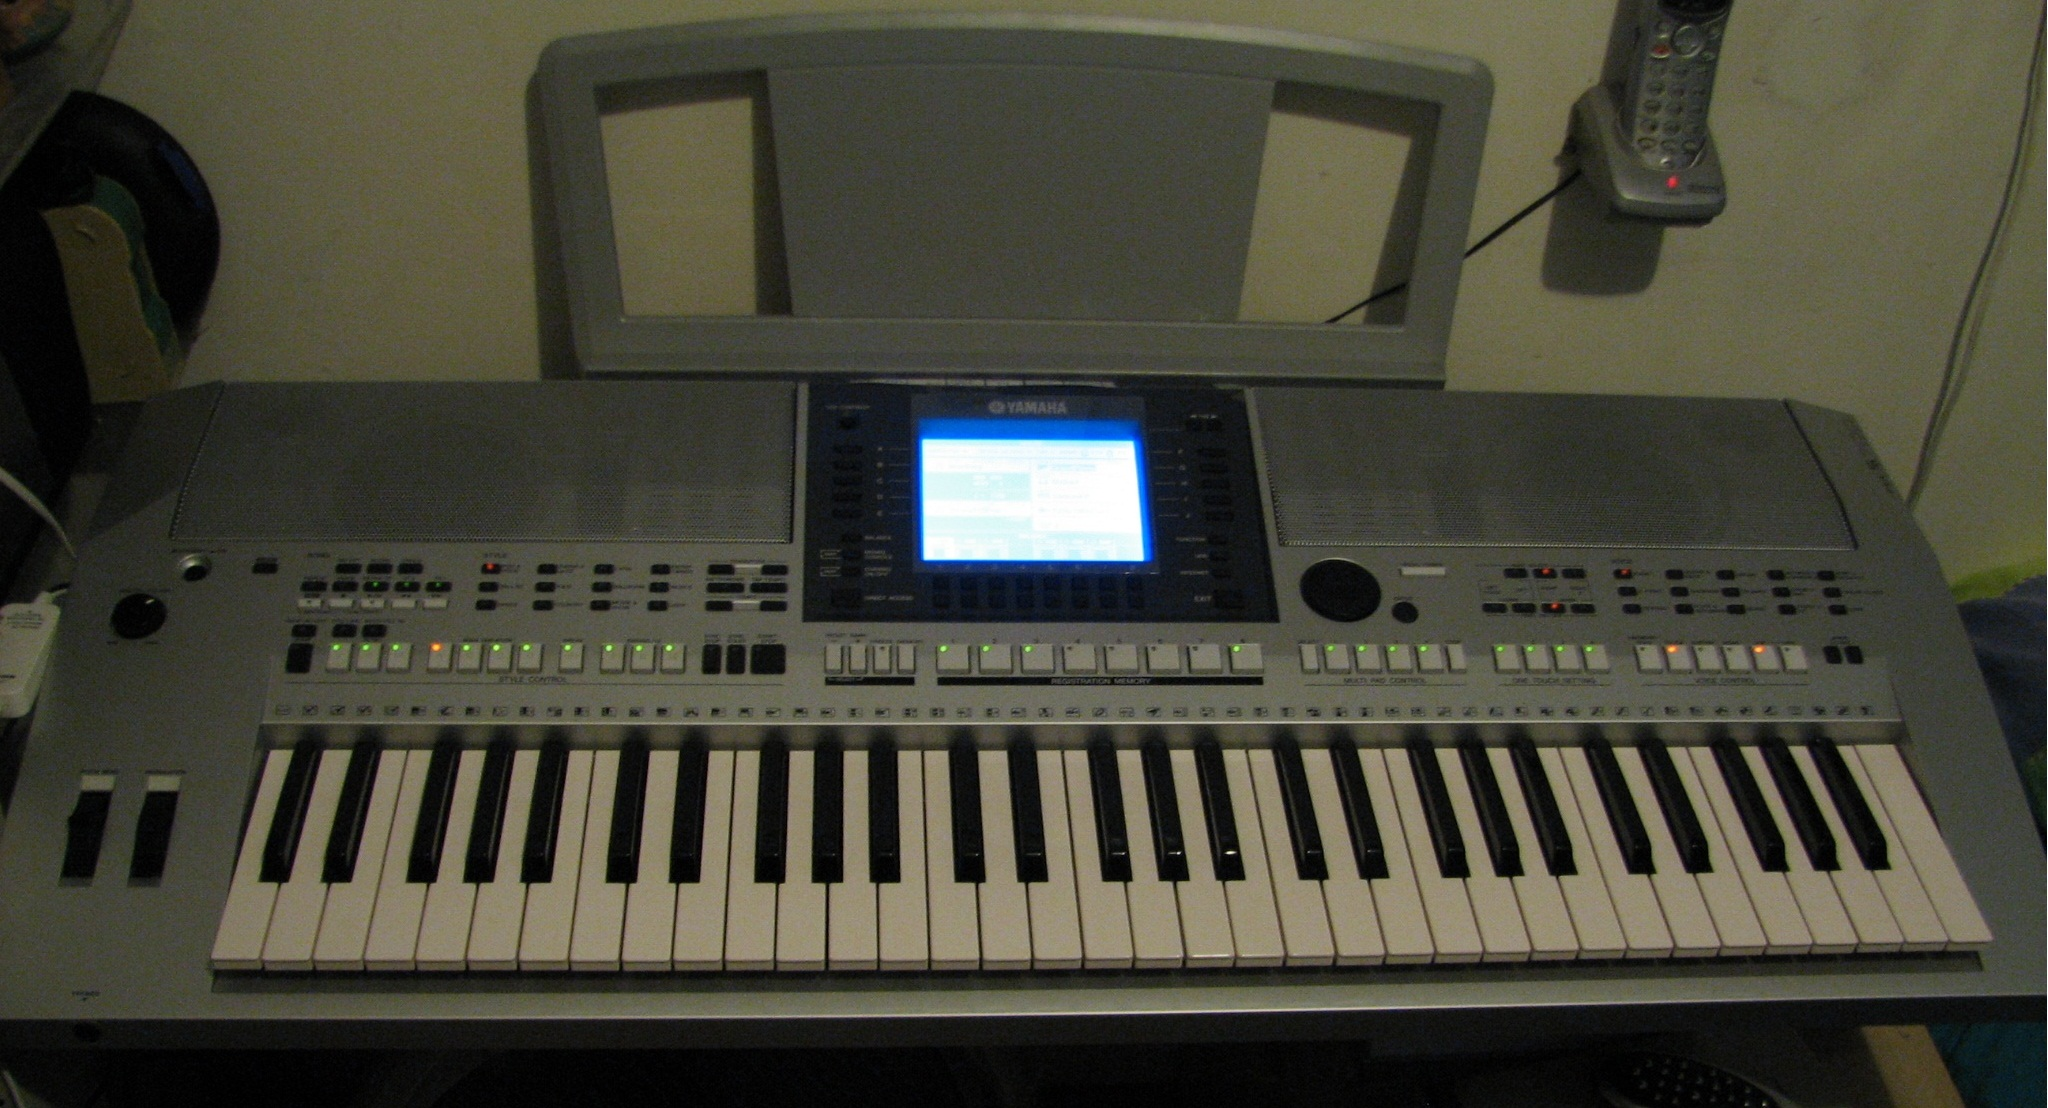 Psr Eyamaha Keyboard Price